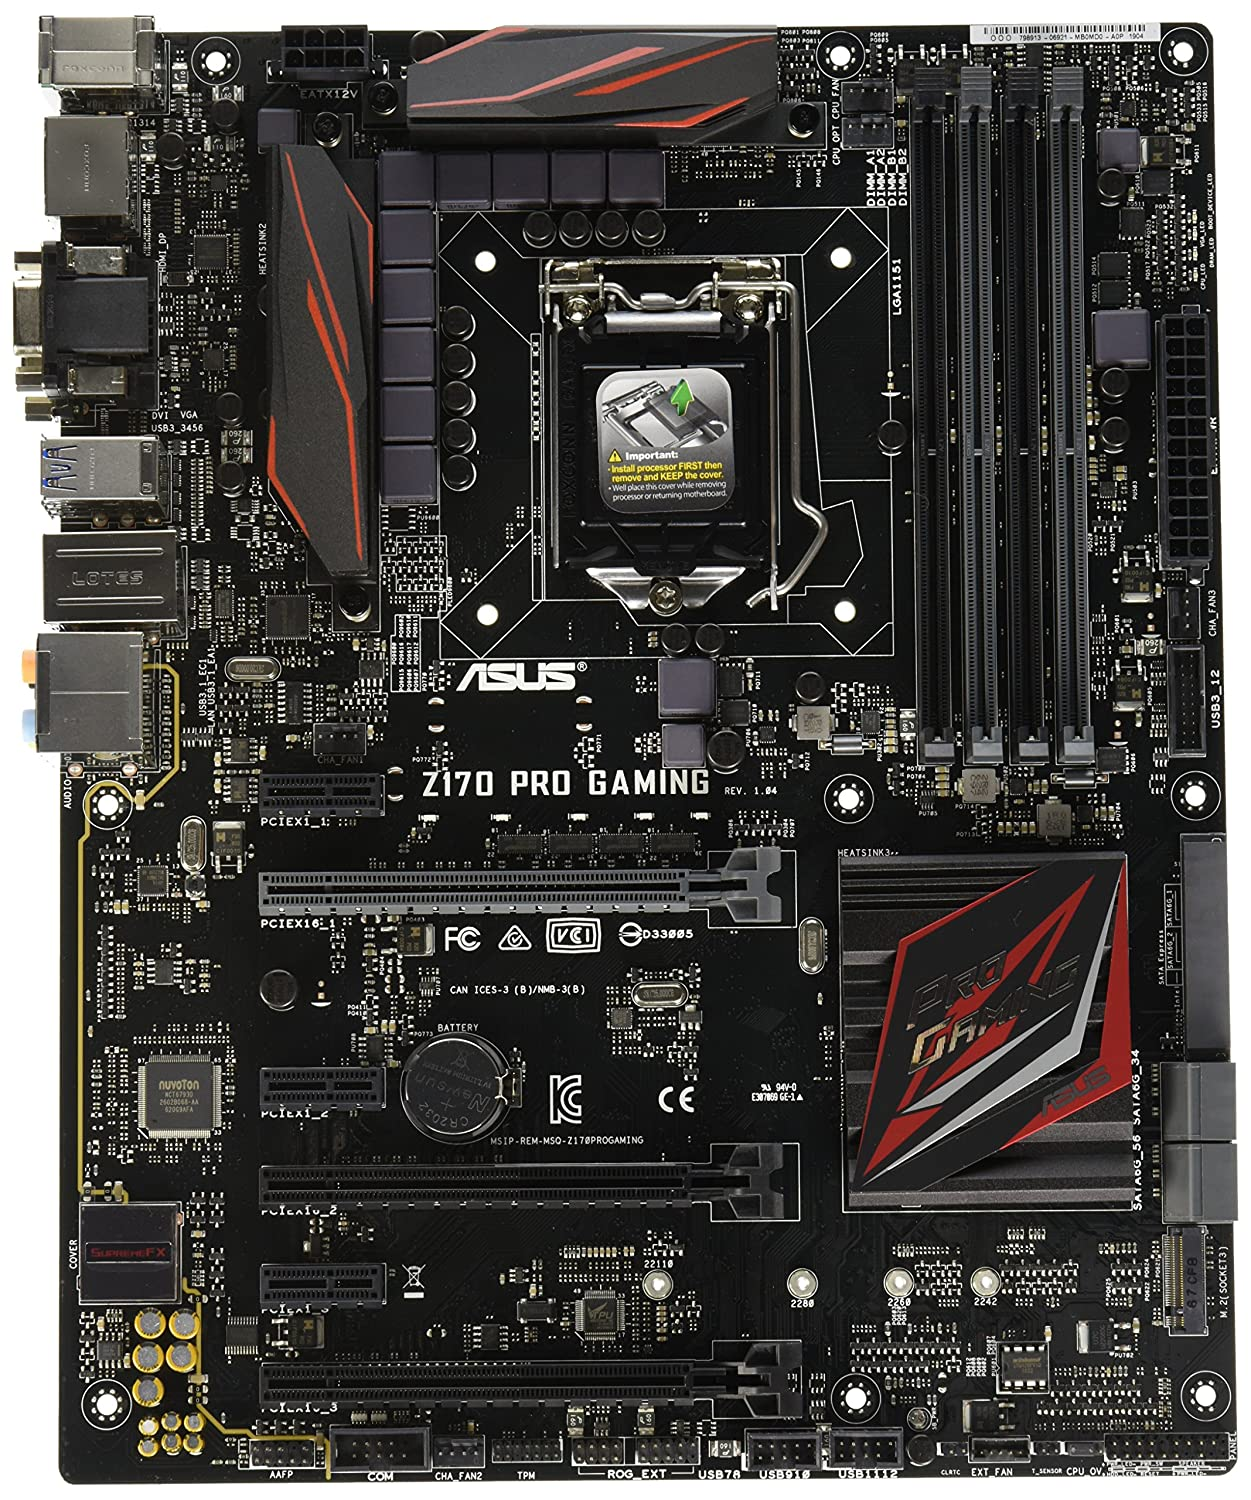 Asus Optimized Z170 Atx Hdmi Dvi D Dual Ddr4 3400 Motherboard H170 Pro Usb 31 Socket 1151 Lga Chipset Intel Lga1151 For 6th Gen Gaming Motherboards Computers